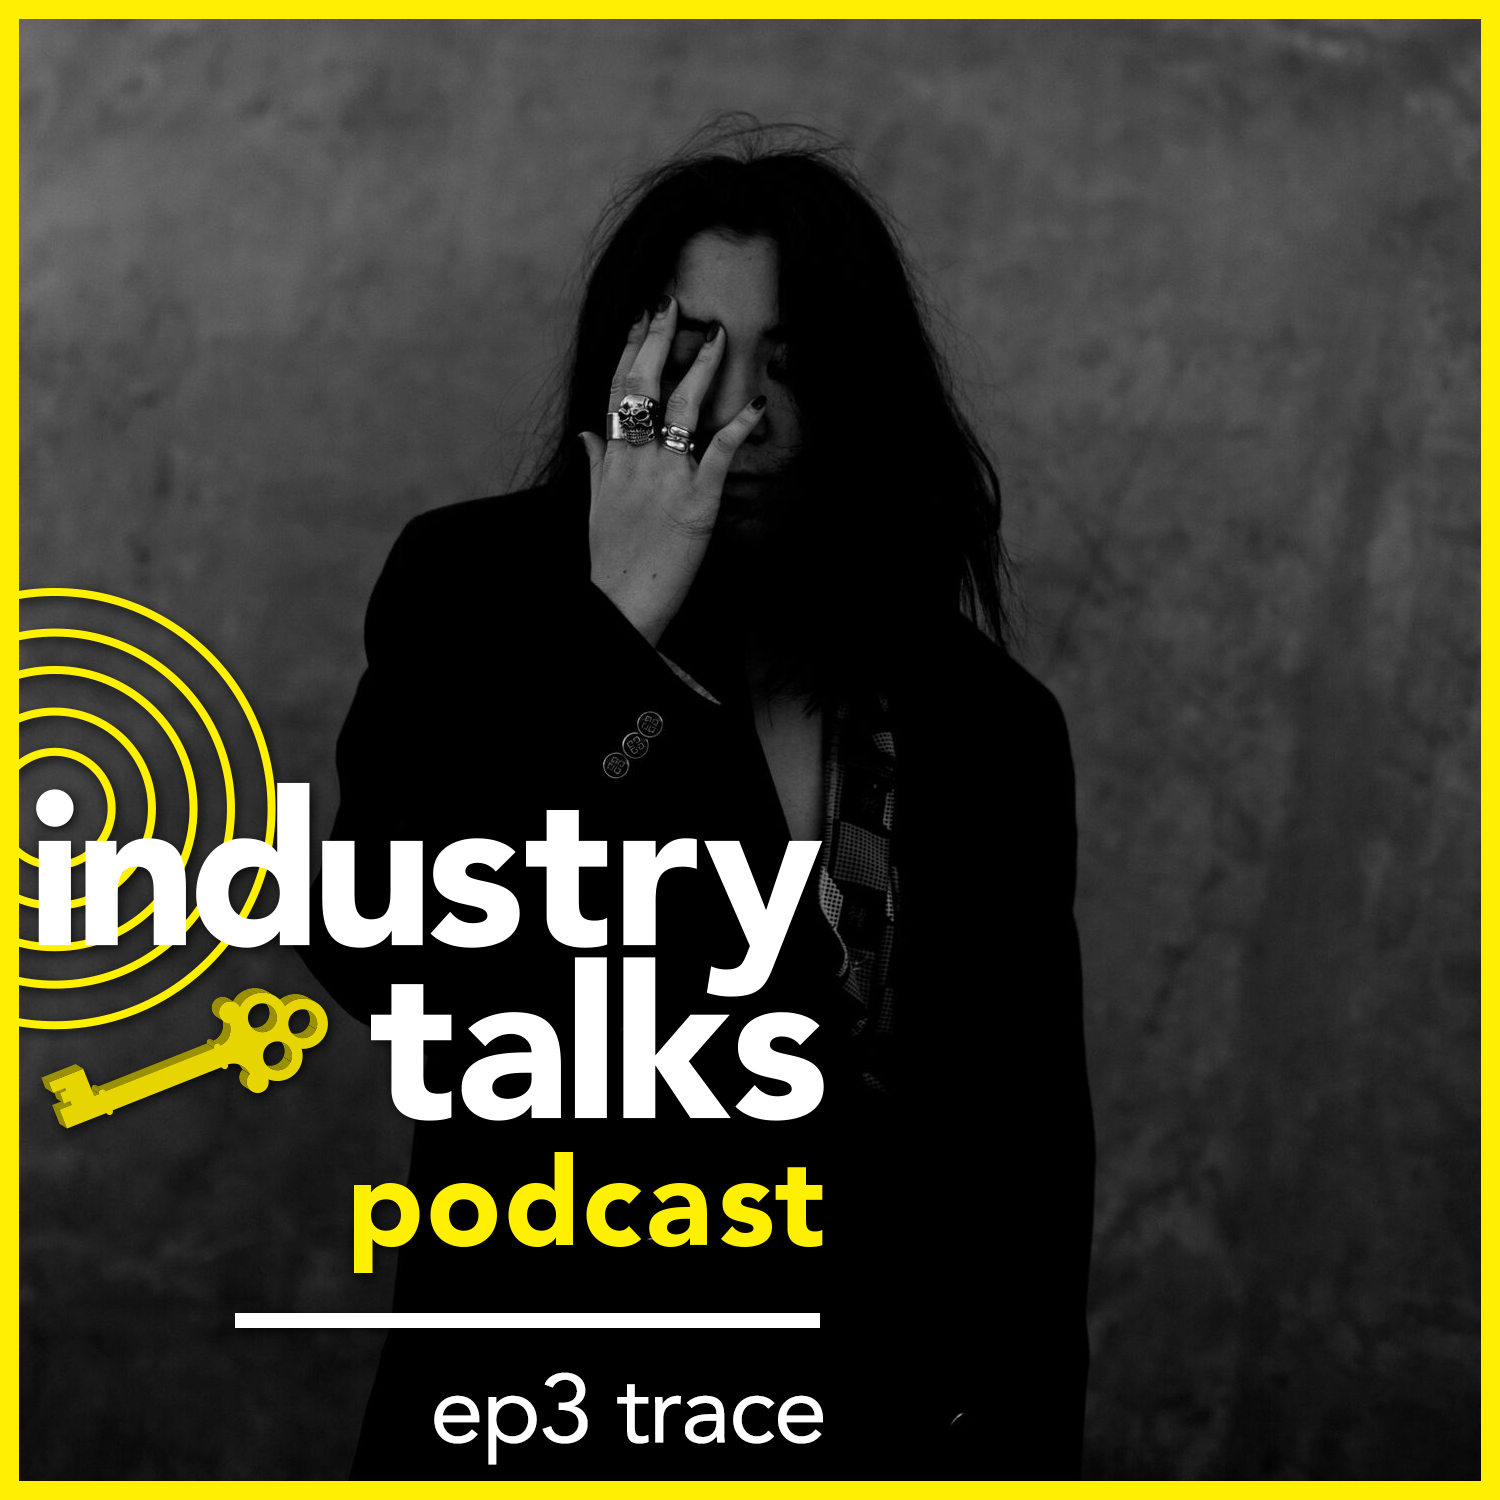 Industry_Talks-Podcast-EP3-TRACE-Square.jpg